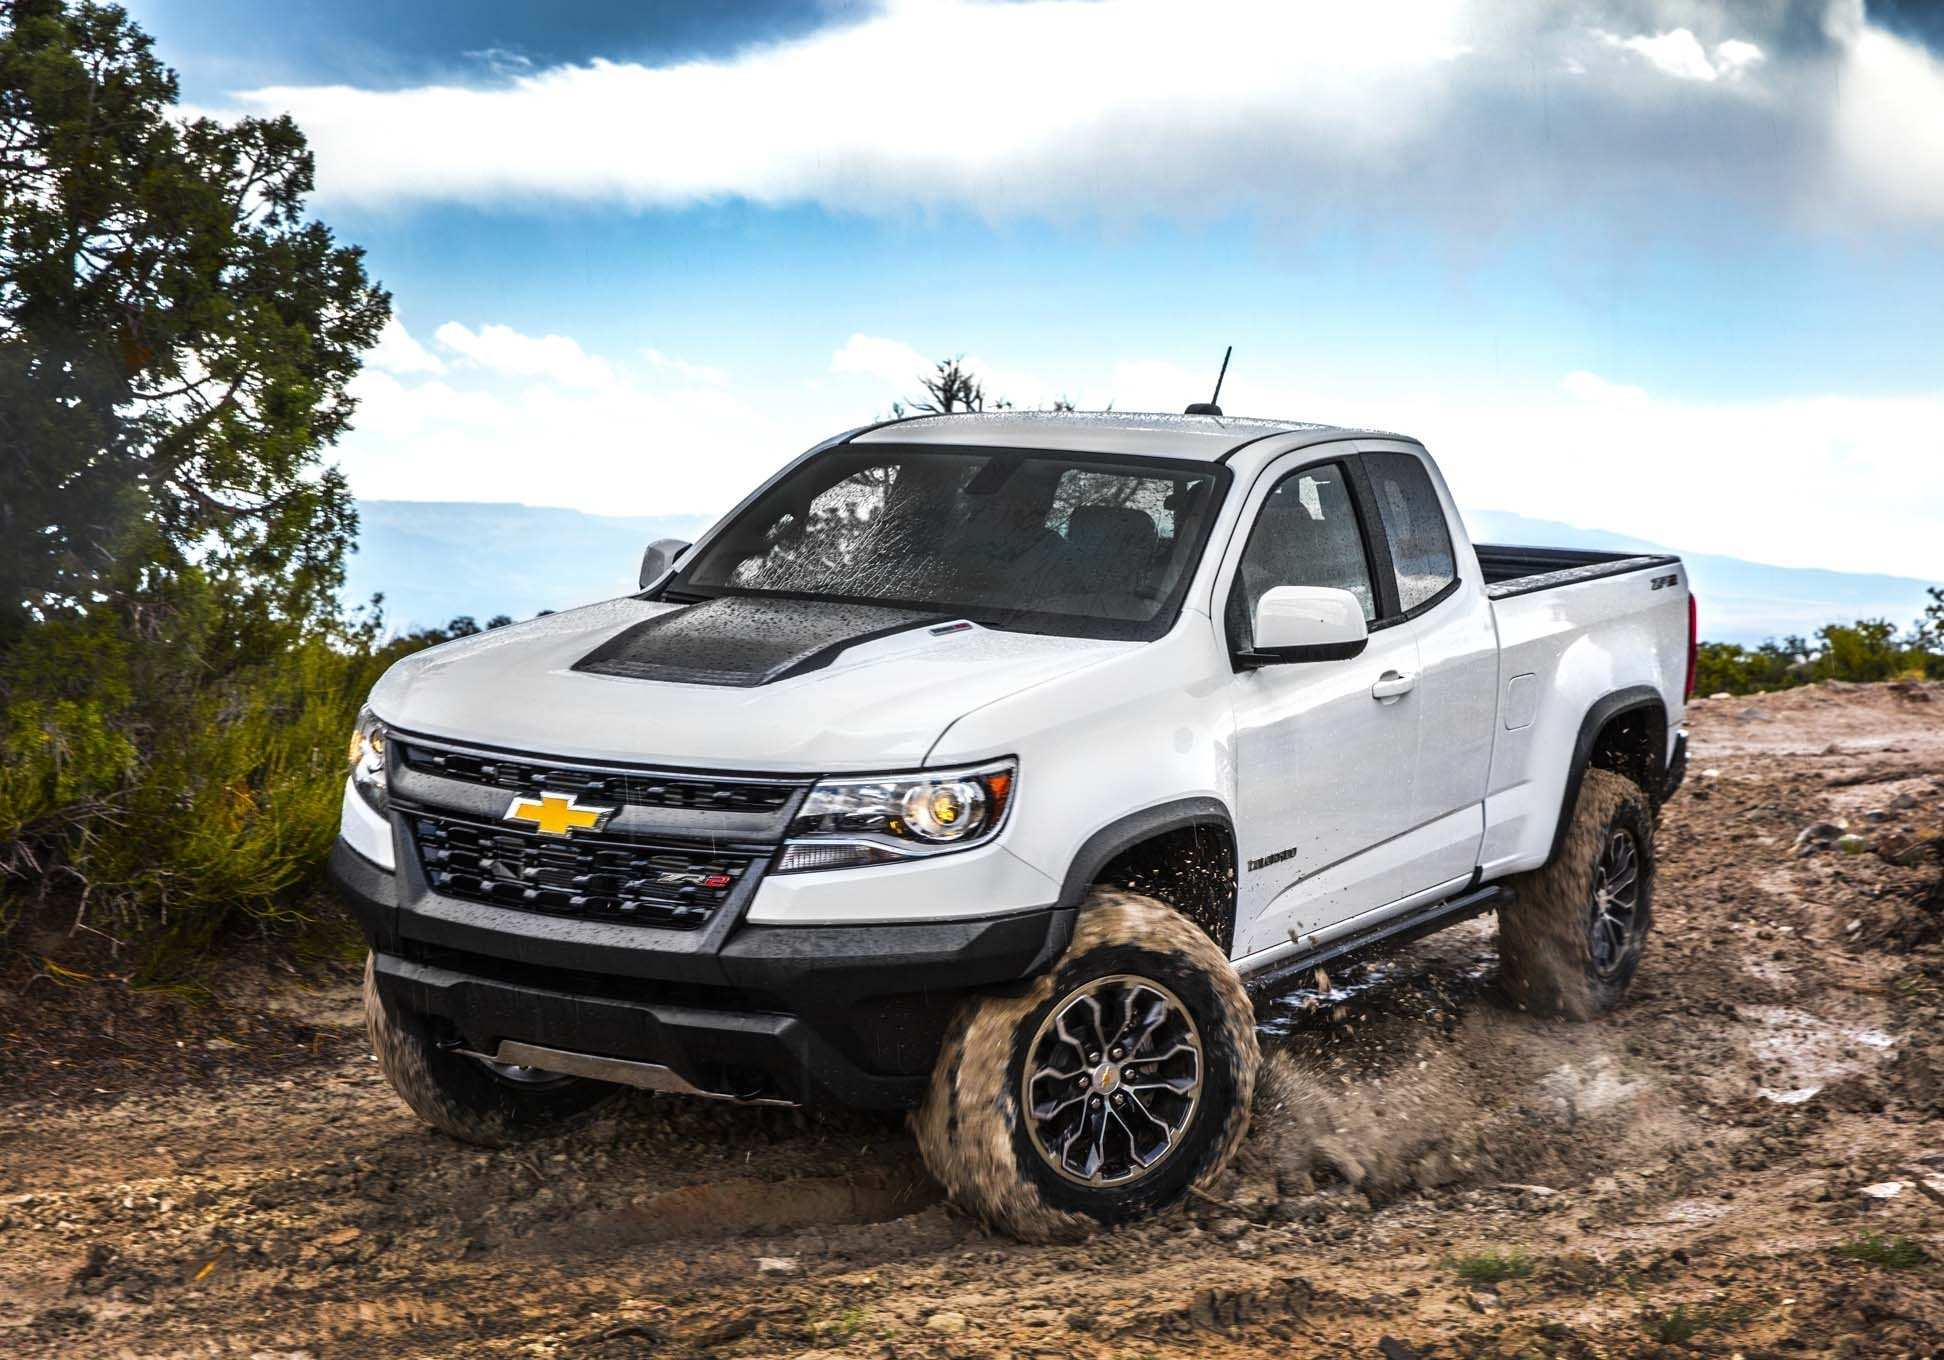 45 New New Chevrolet Zr2 2019 First Drive Price Performance And Review Exterior and Interior with New Chevrolet Zr2 2019 First Drive Price Performance And Review